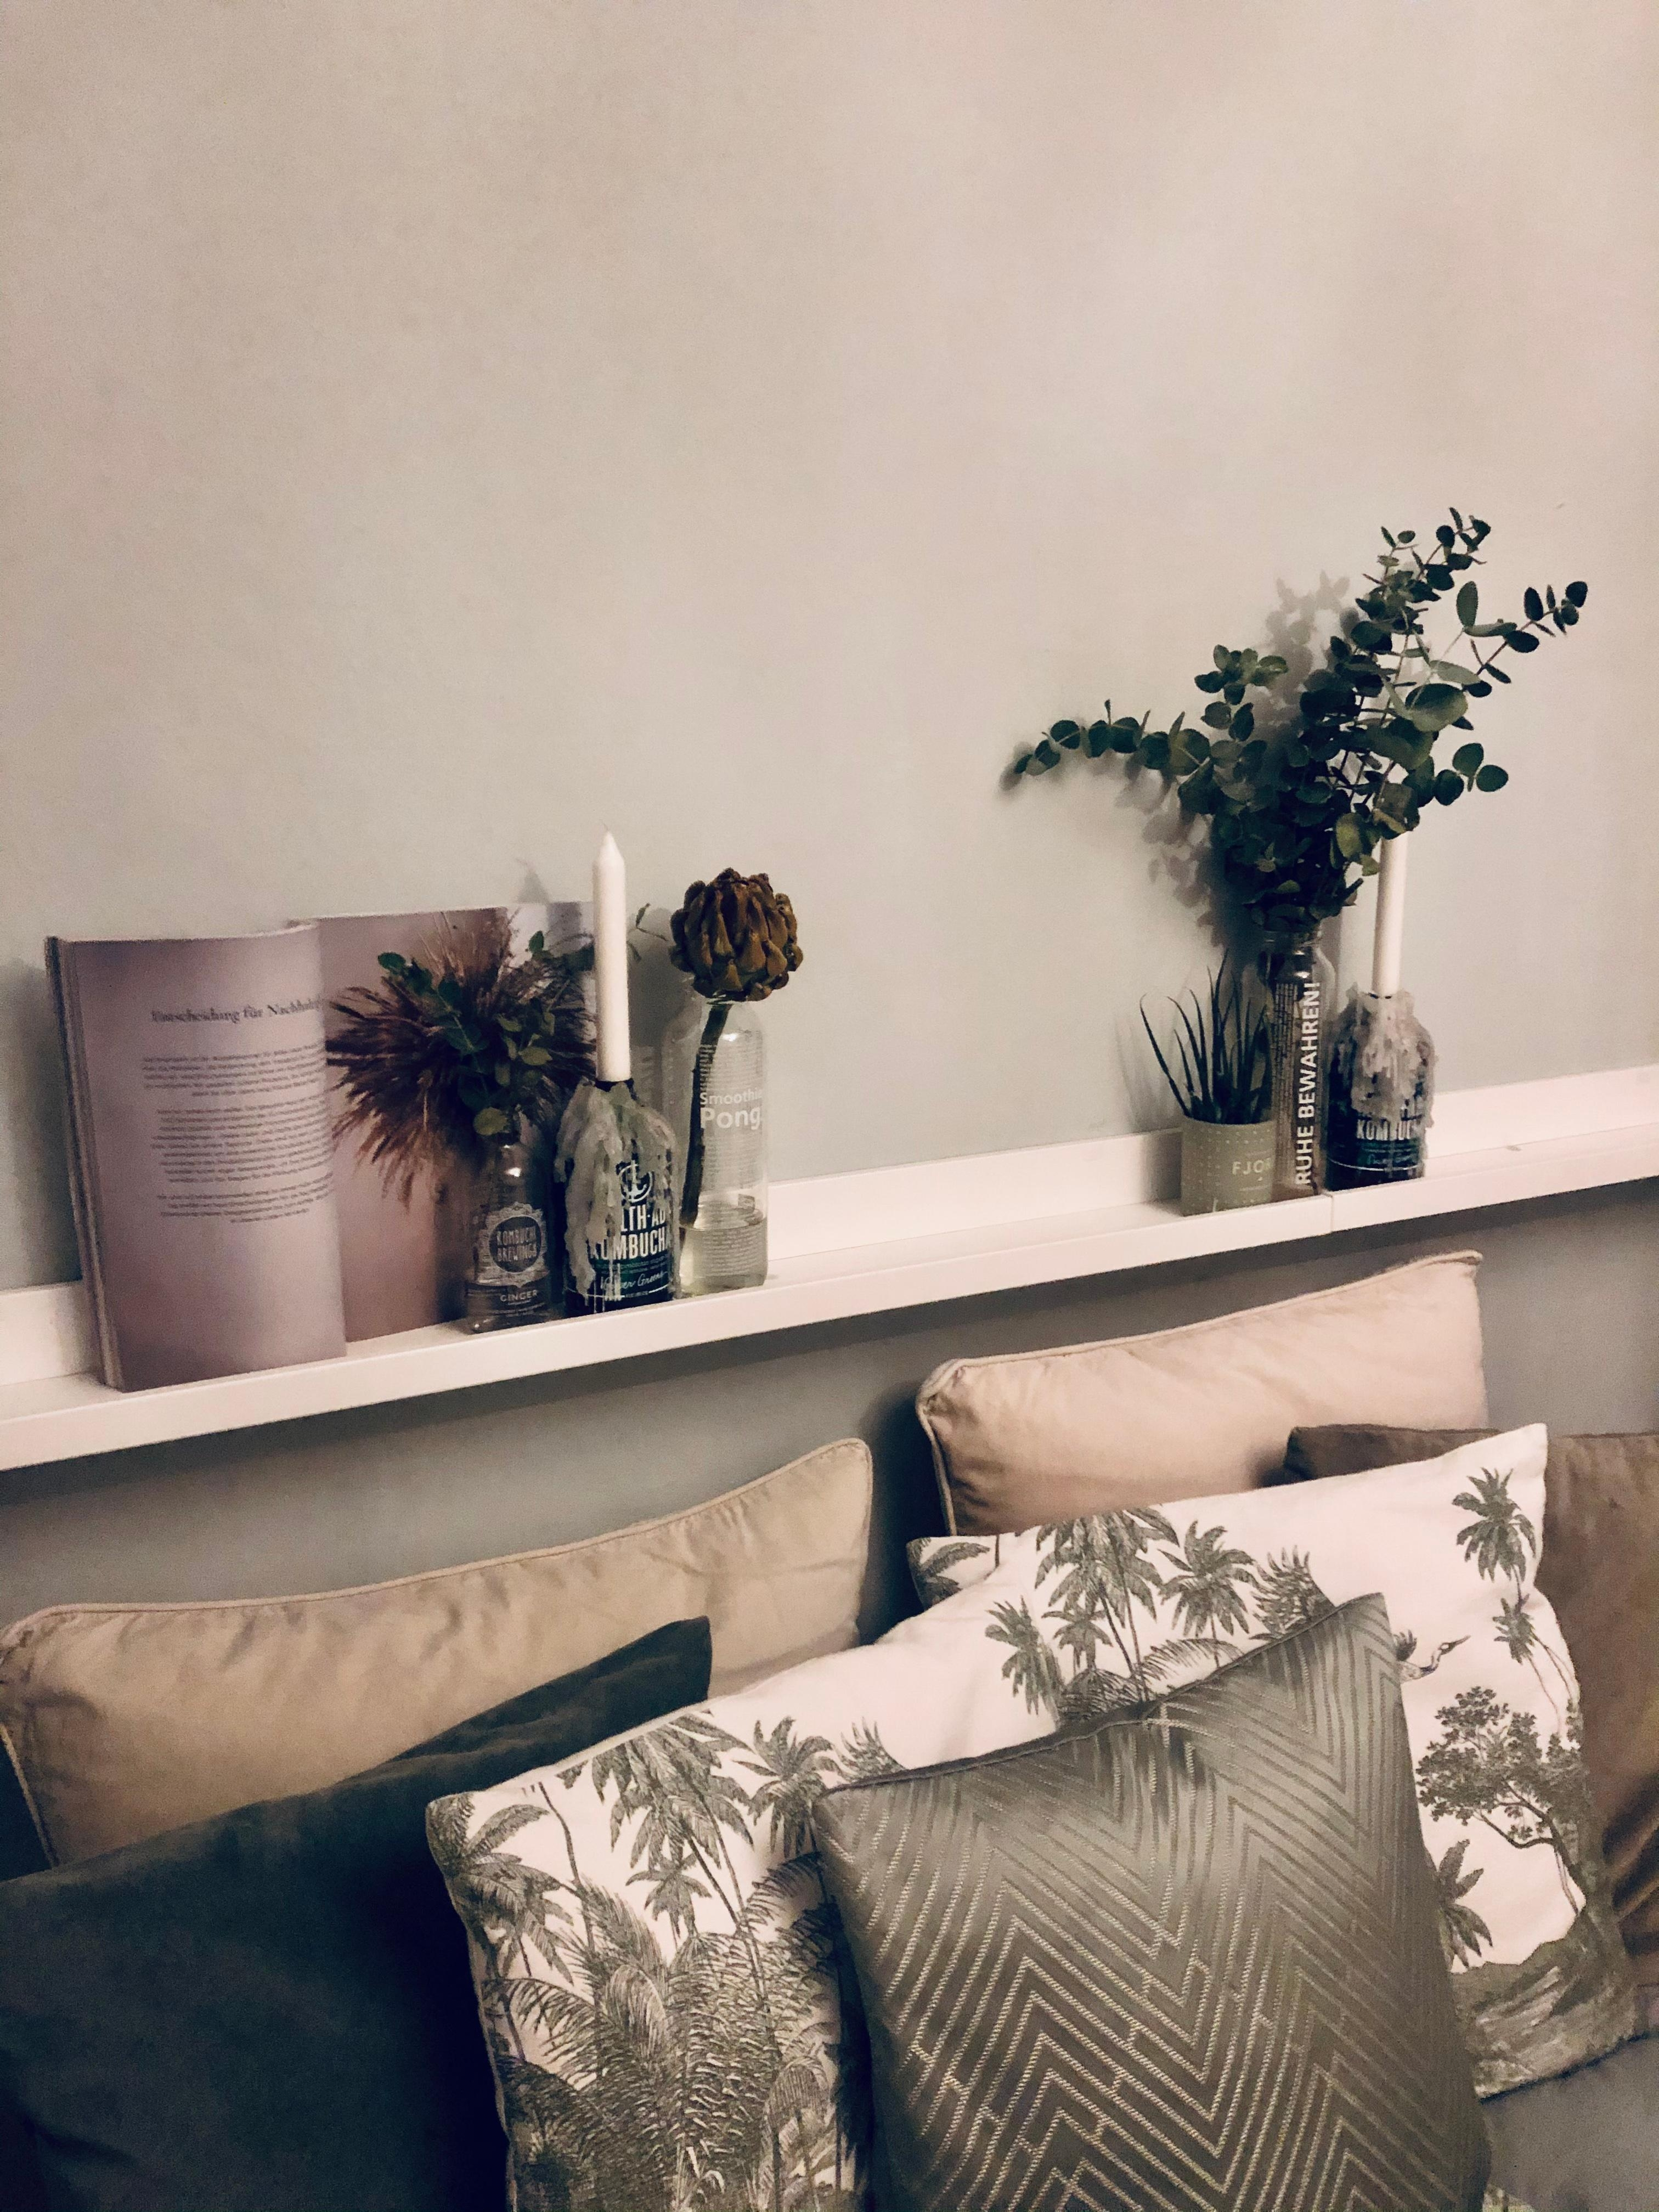 #bedroom #details #ikea #upcycling #sagewalls #eucalyptus #hmhome #roominabox